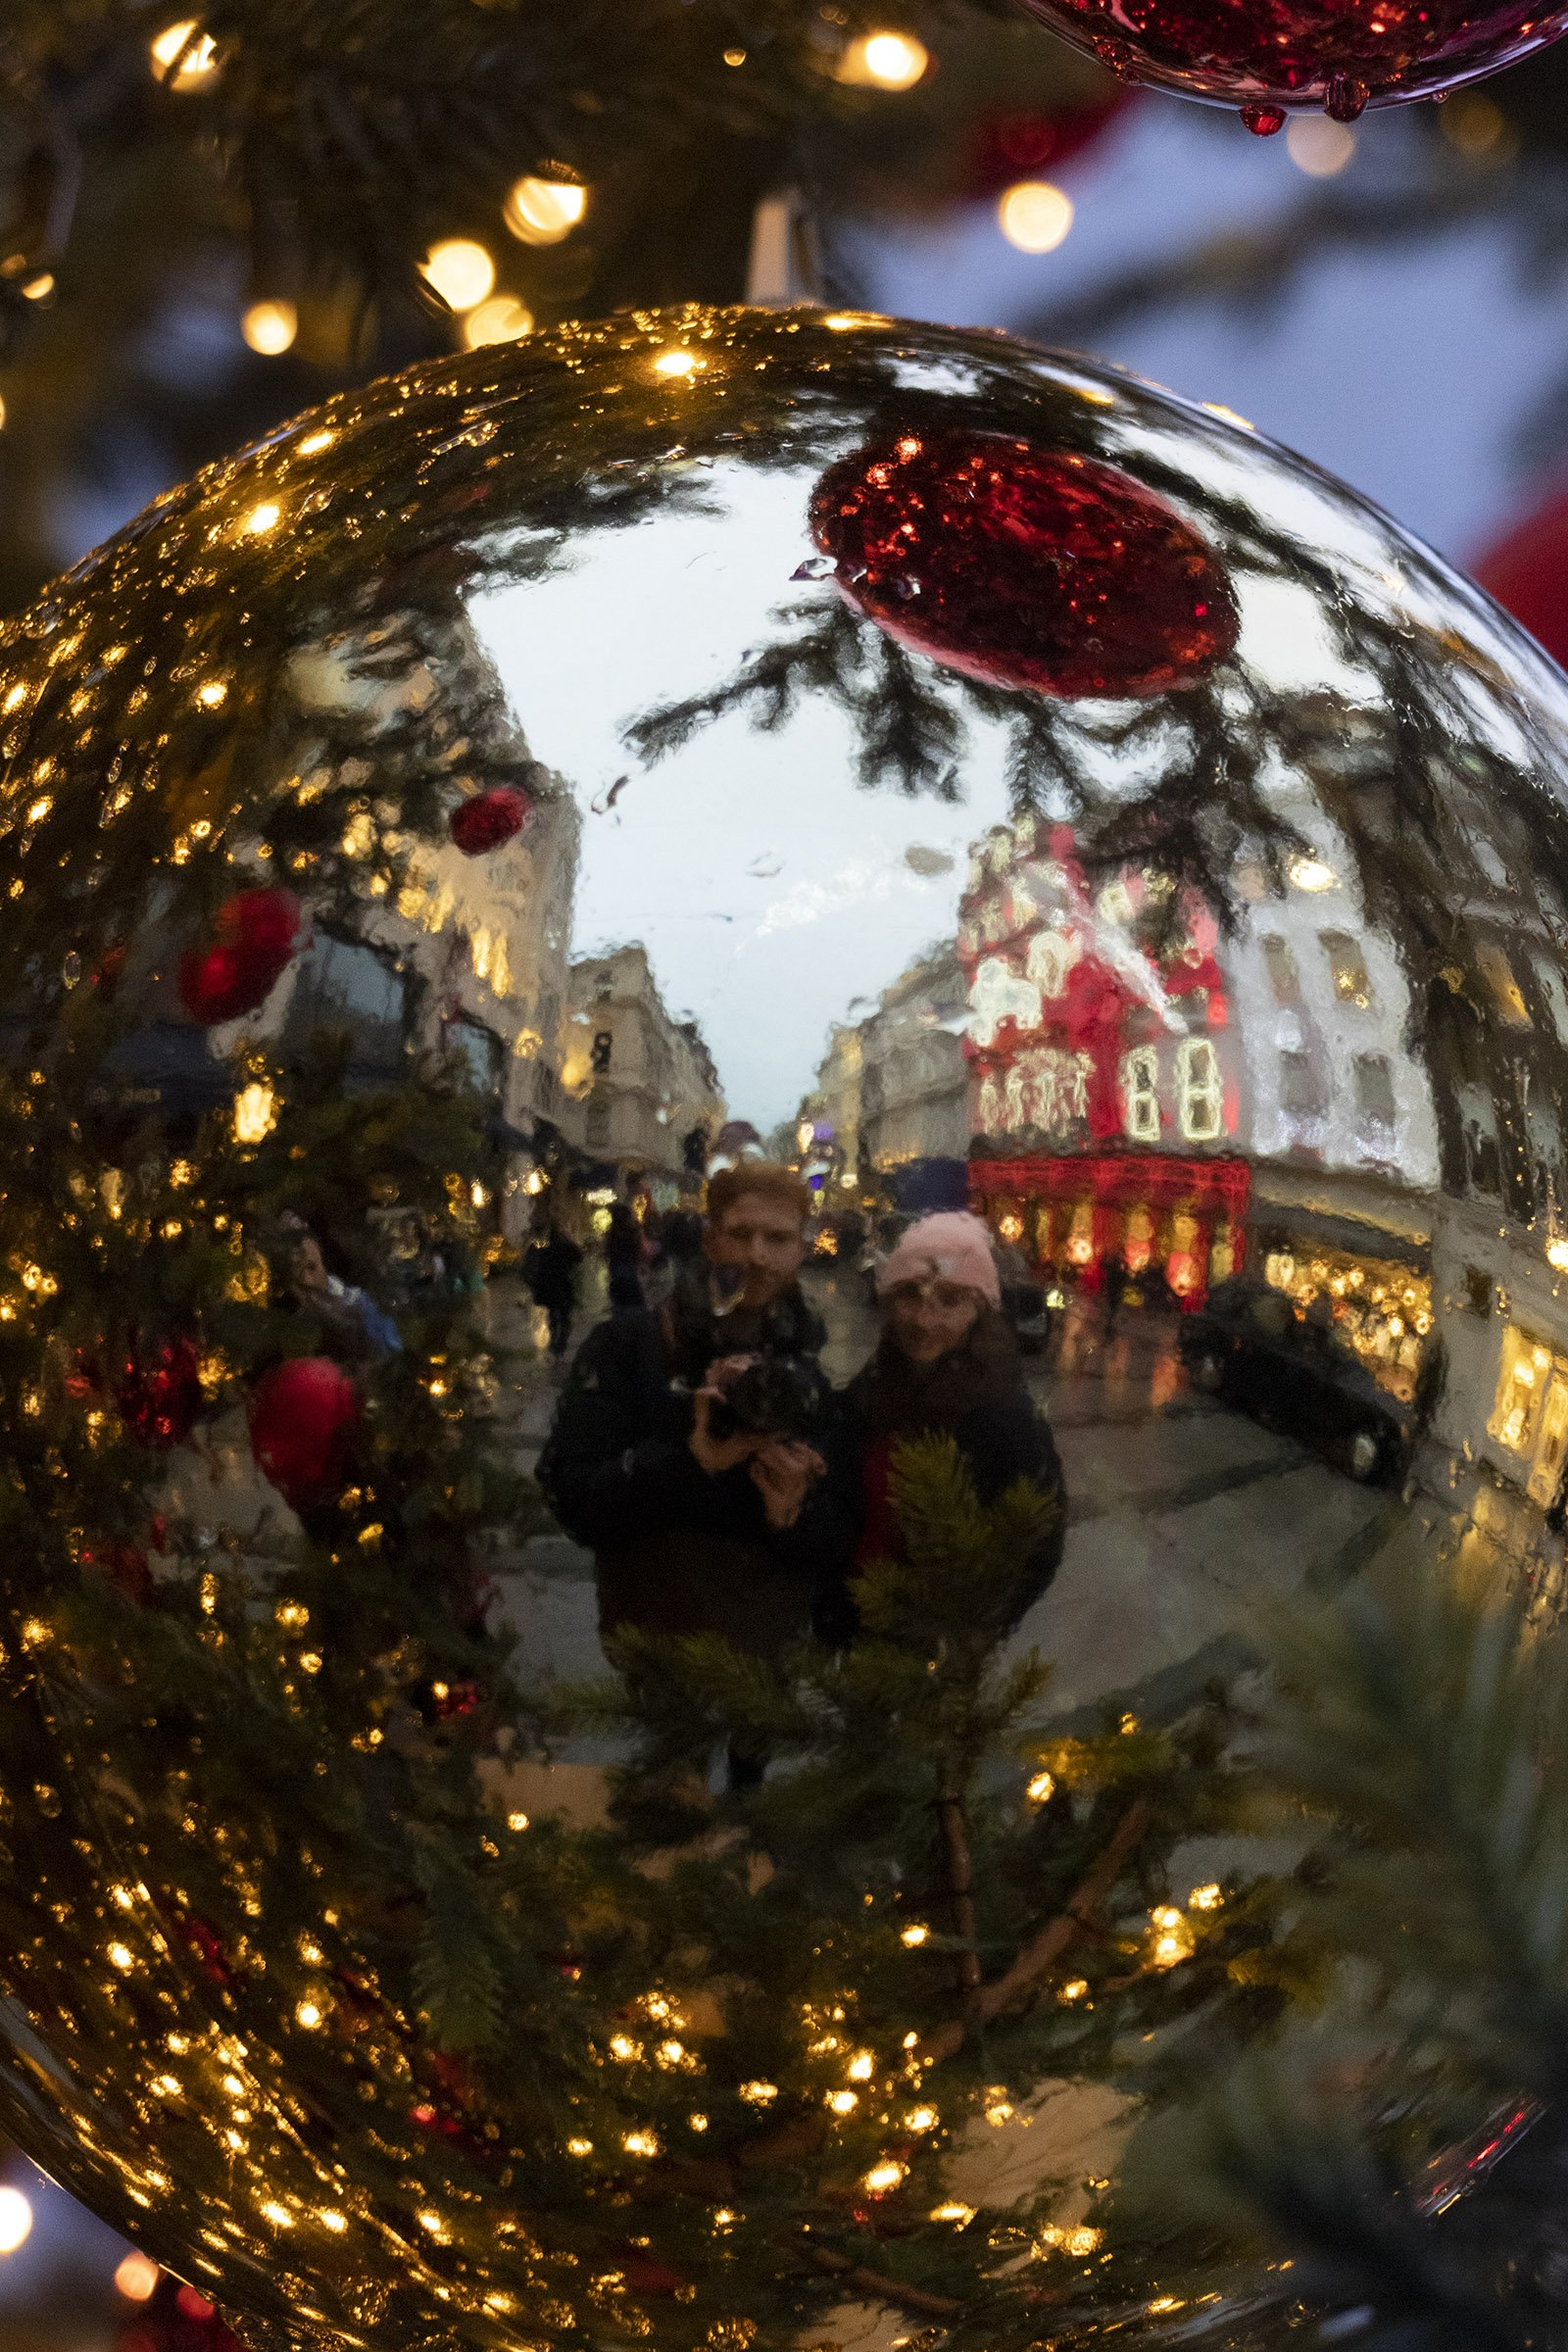 Reflection in bauble